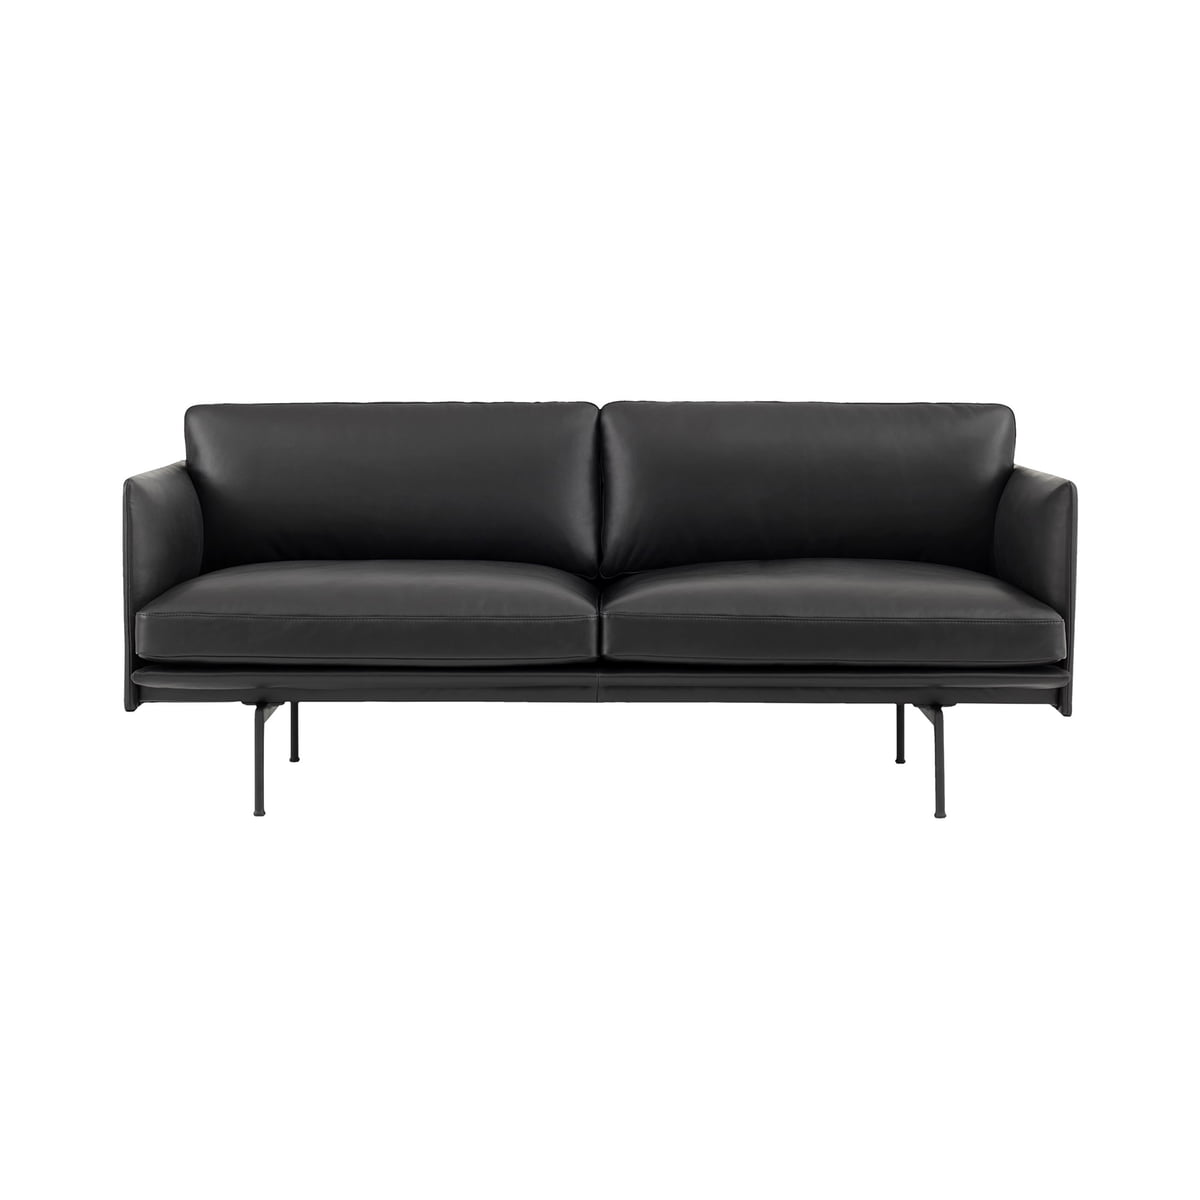 Outline Studio Sofa 2 Seater By Muuto In Black Leather